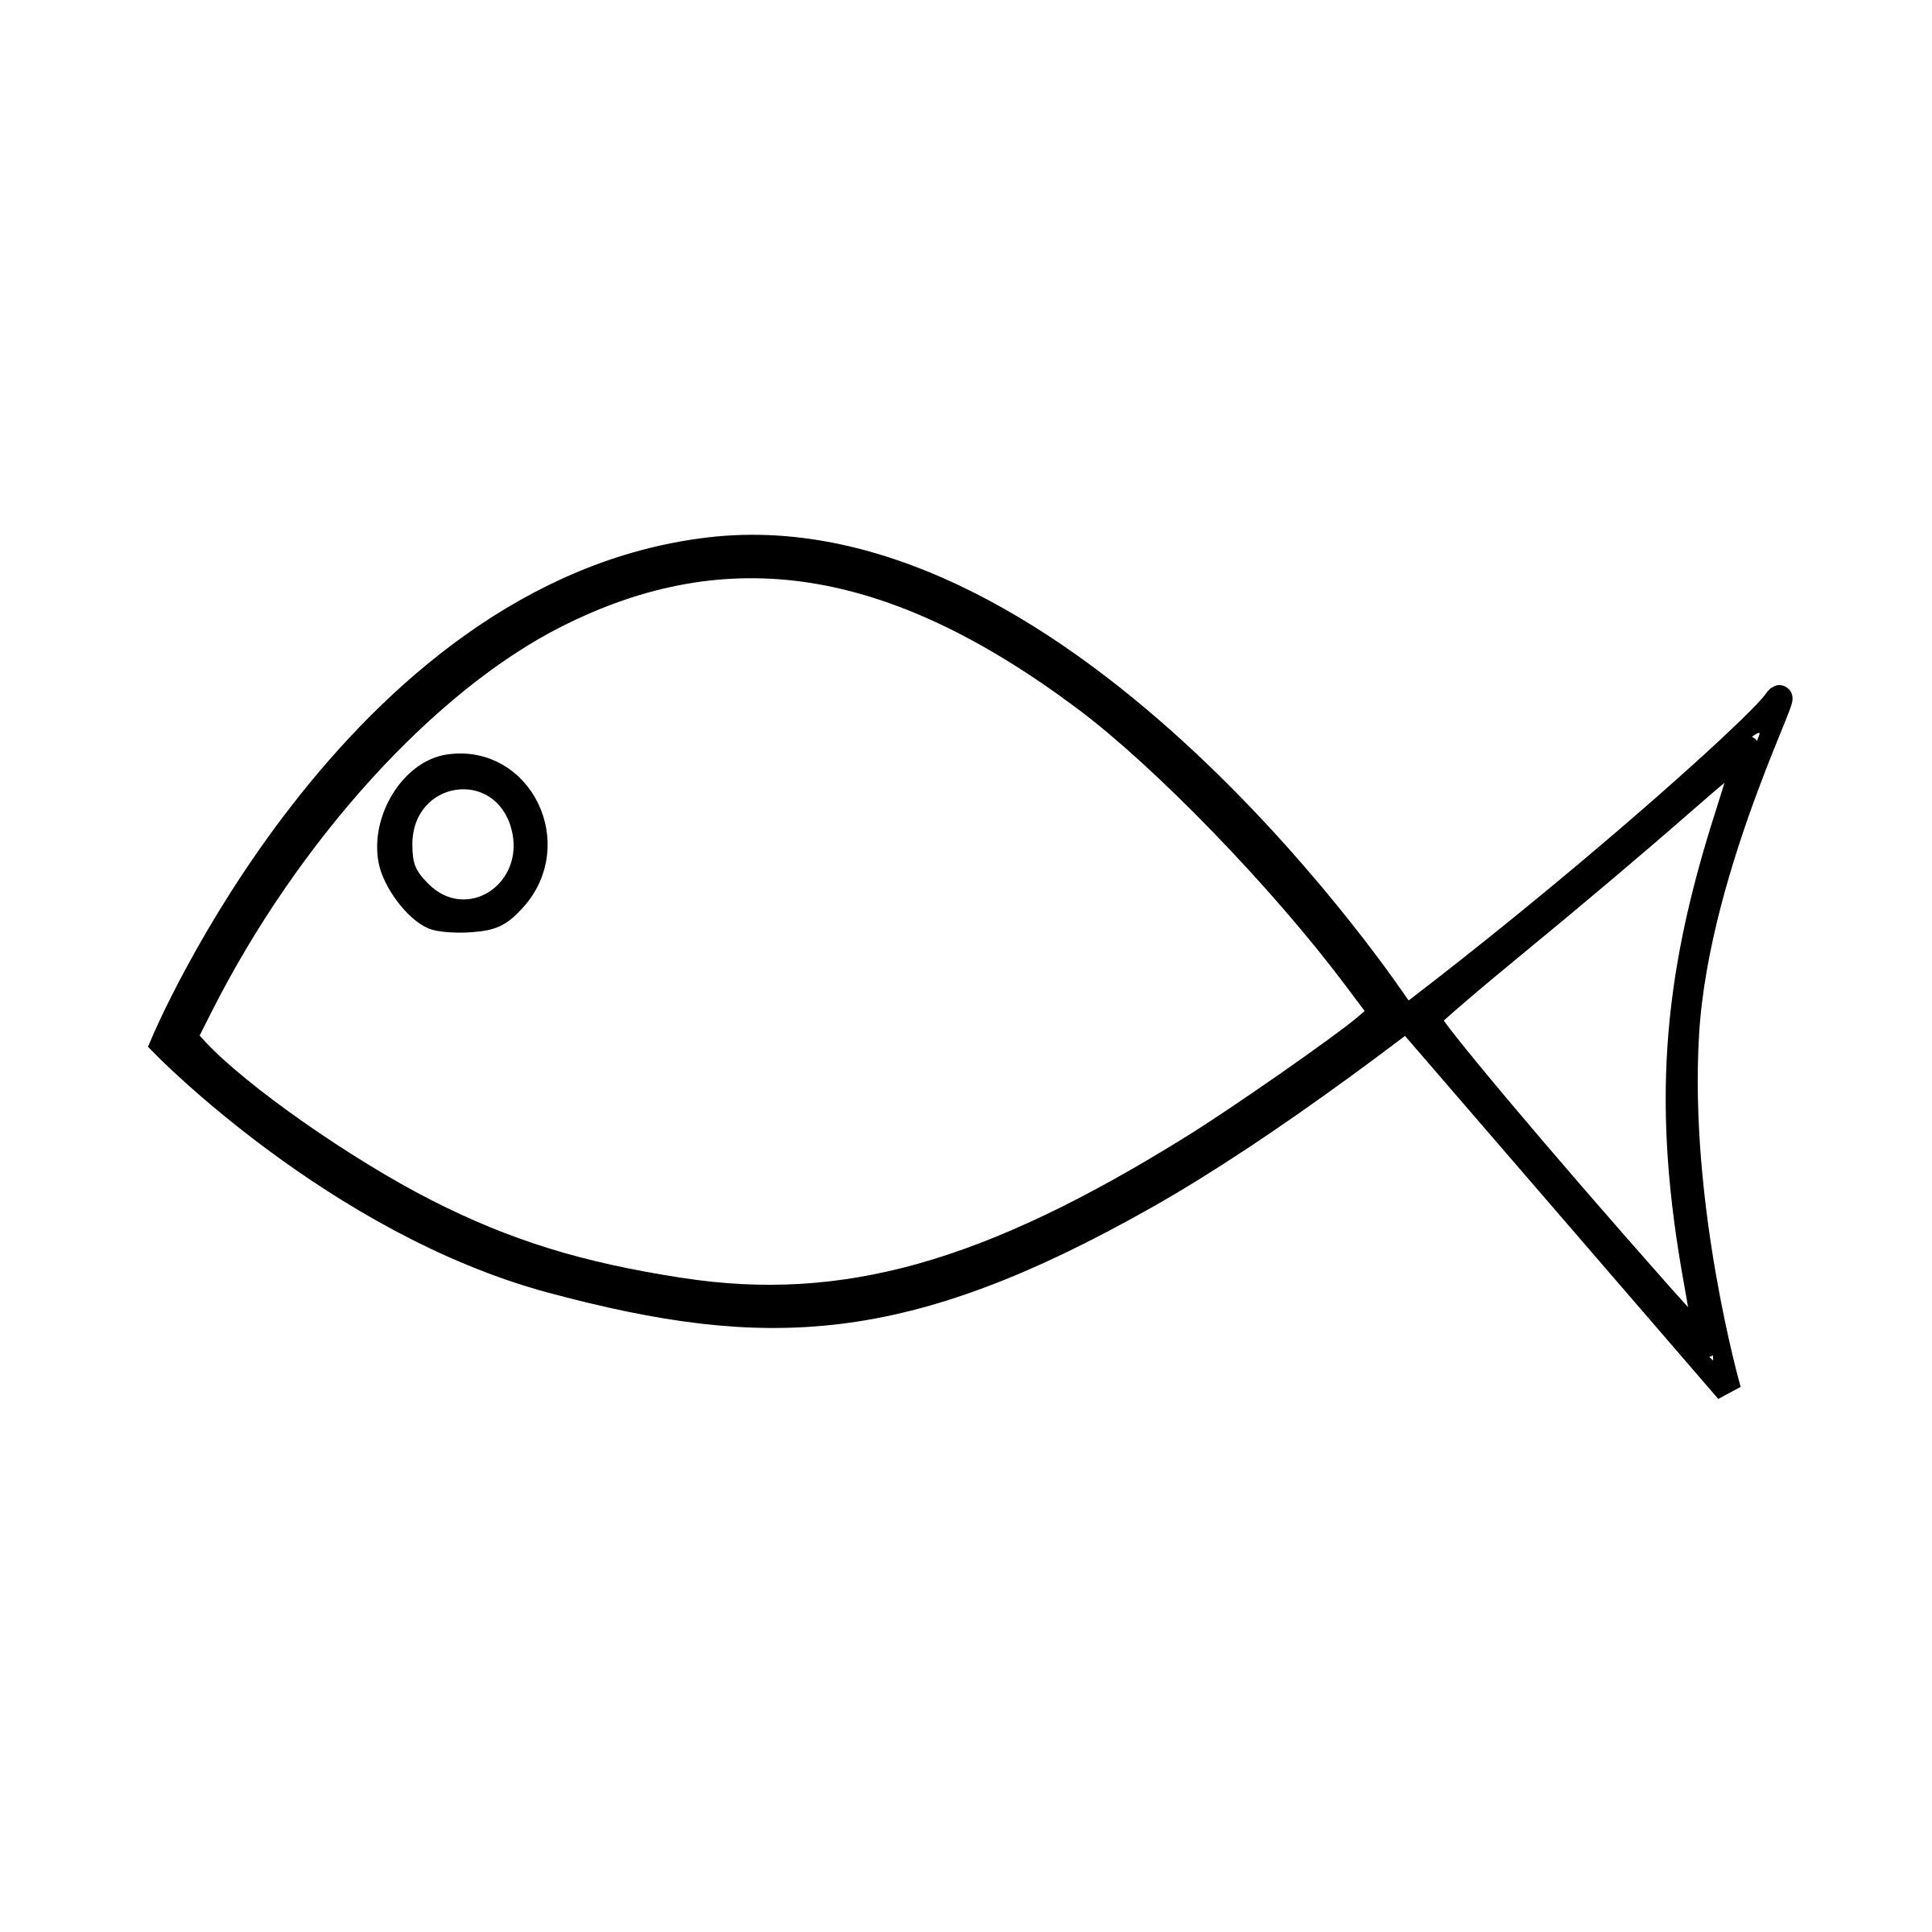 Big image png. Fish clipart simple